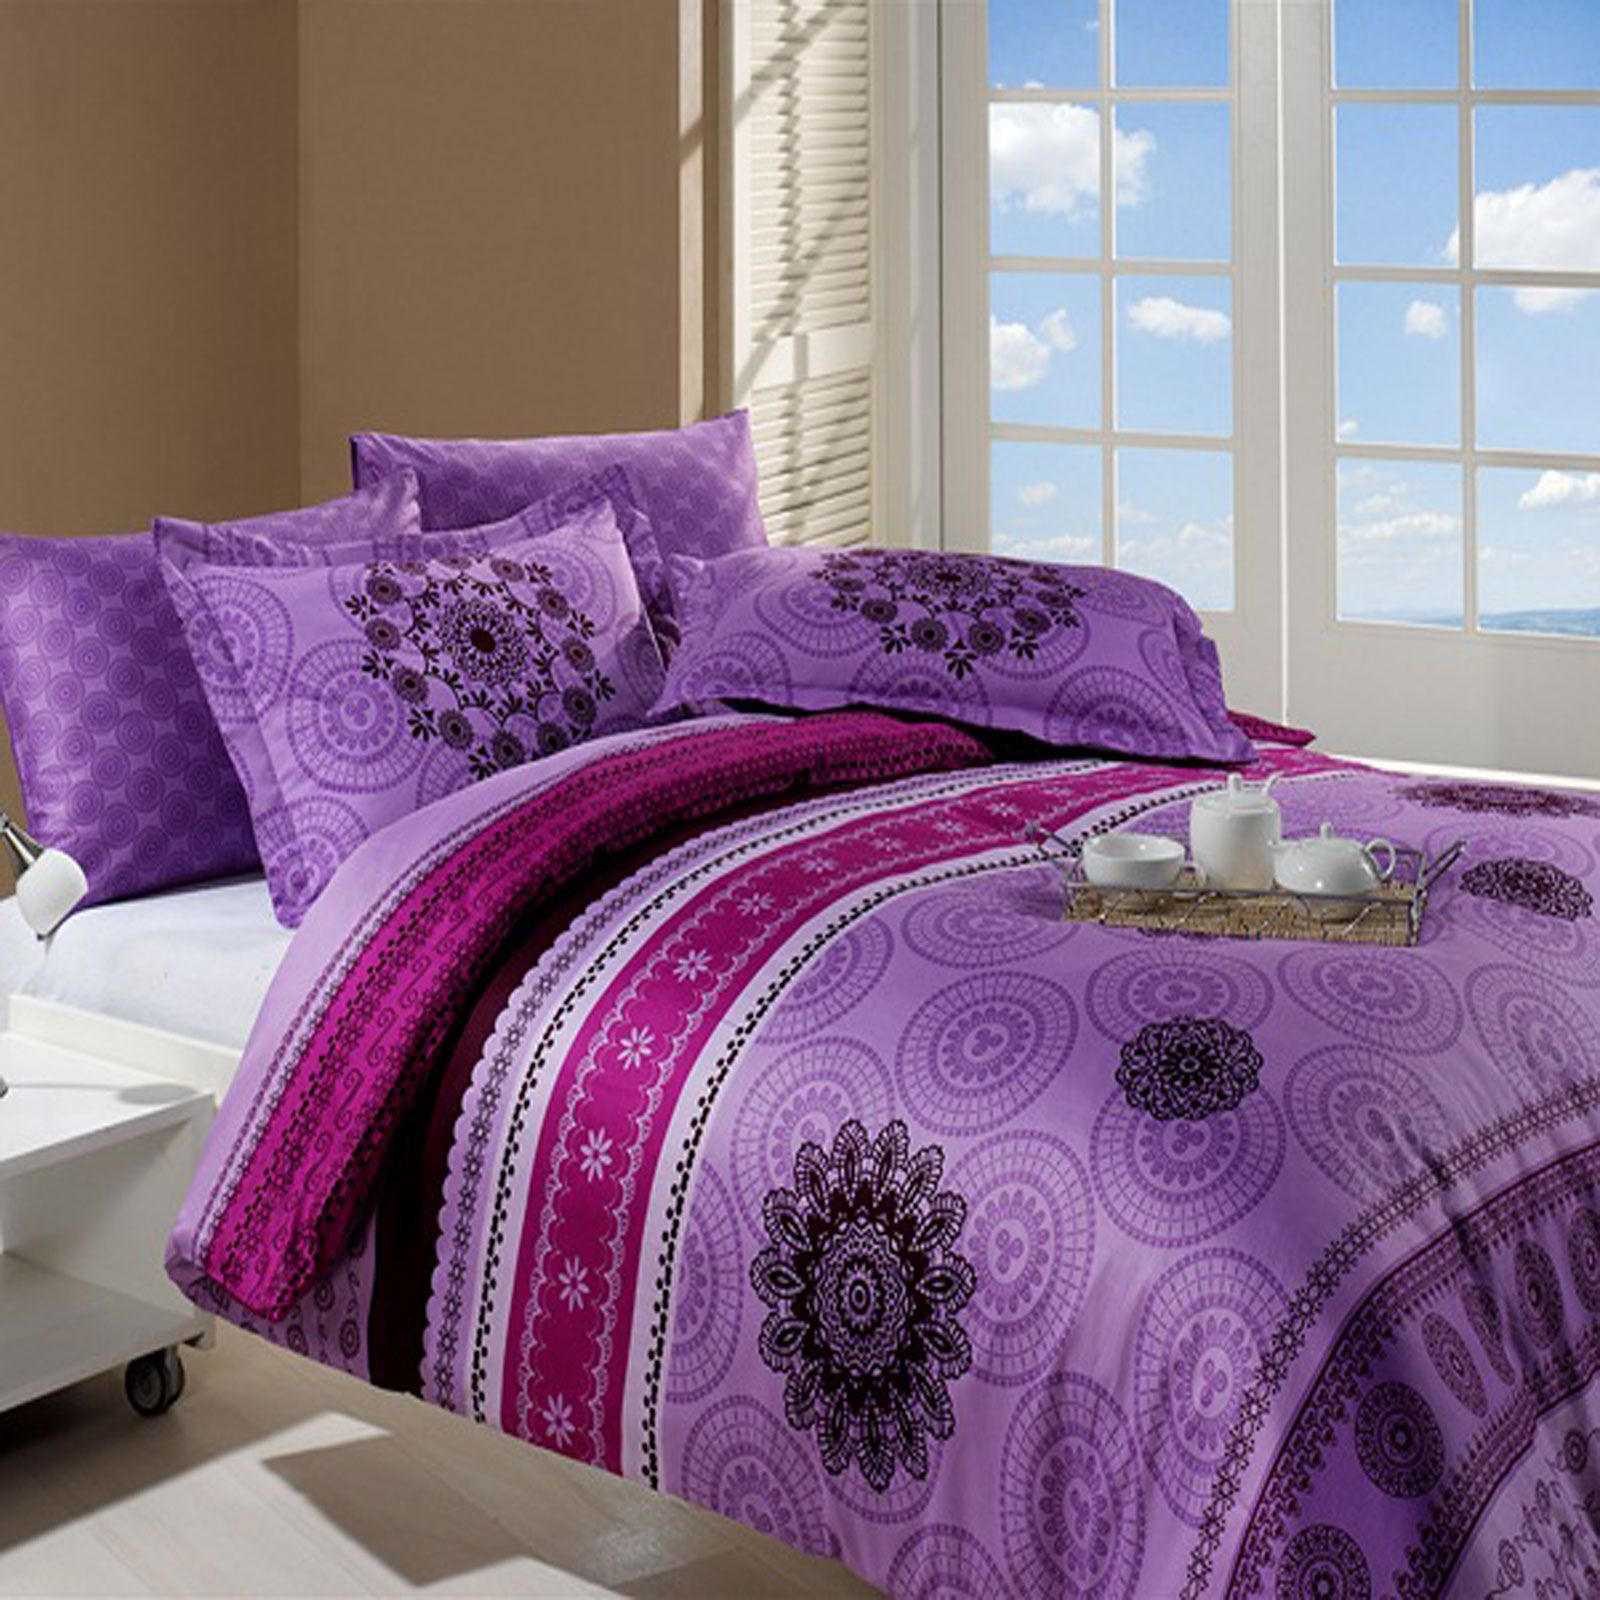 sensei parure housse de couette violet brandalley. Black Bedroom Furniture Sets. Home Design Ideas